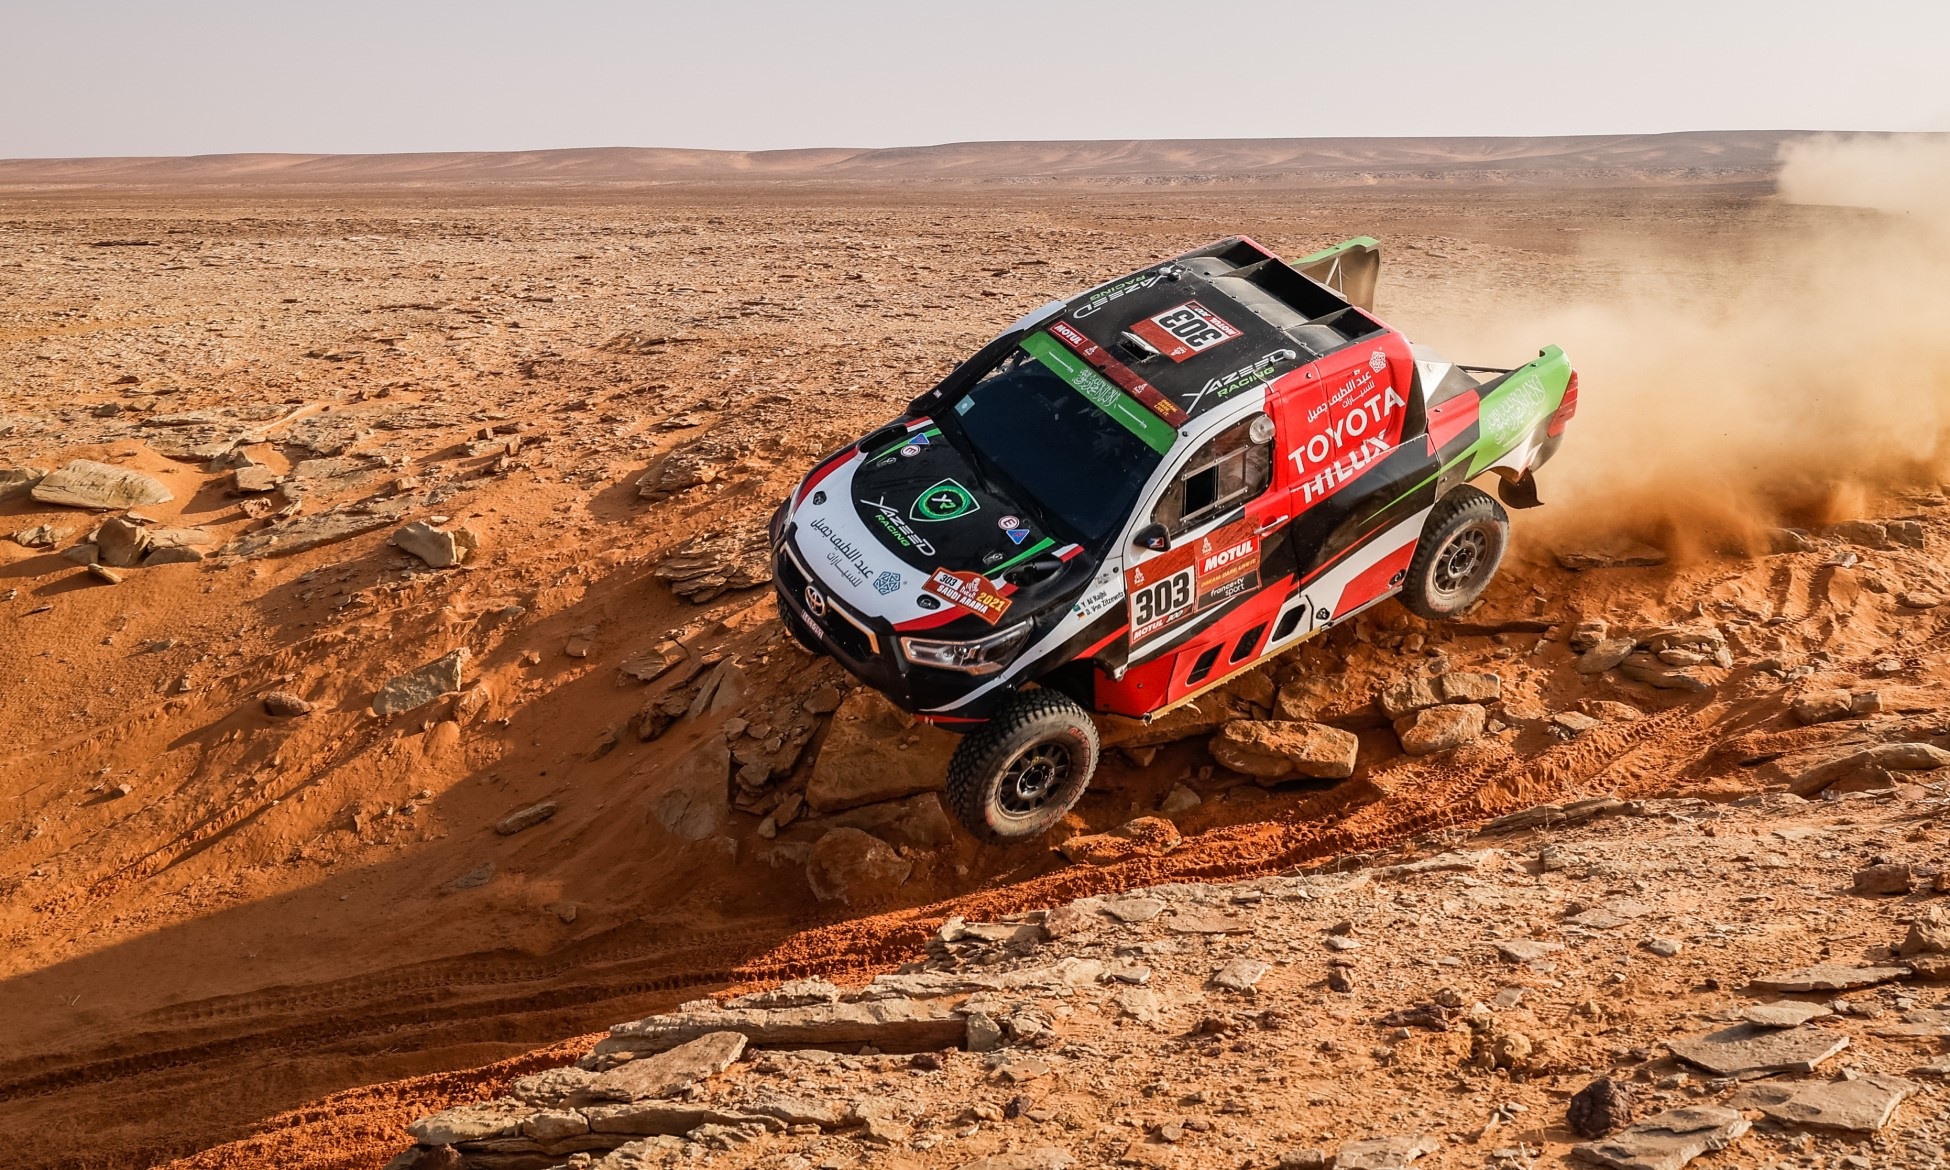 Yazeed Al-Rajhi had an excellent run on 2021 Dakar Stage 10 (Image A.S.O. F.Le Floch DPPI)